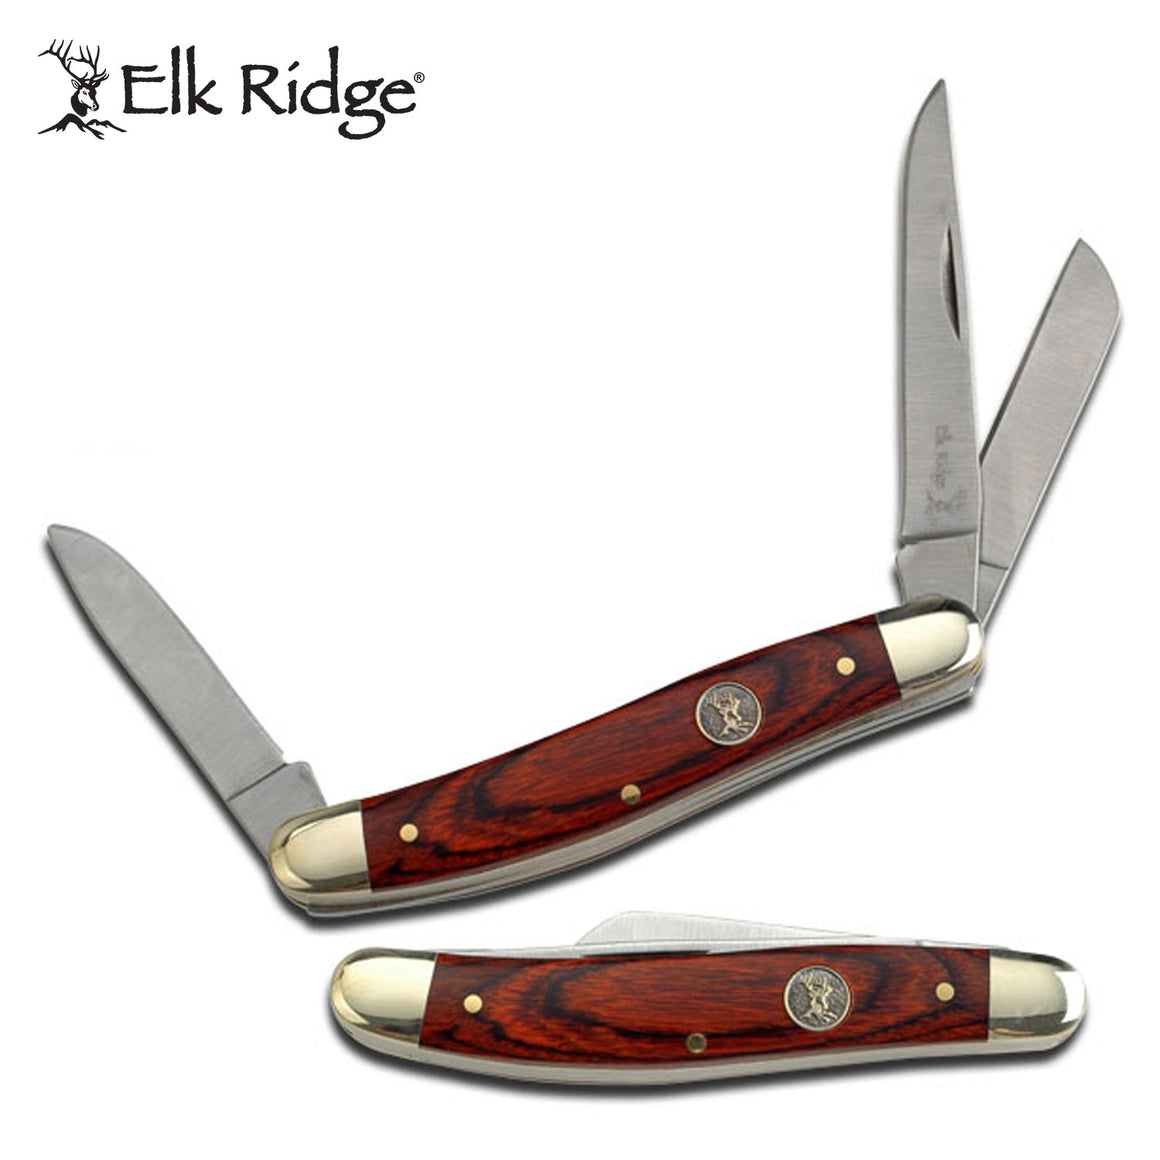 Elk Ridge ER-323W Gentleman's Knife